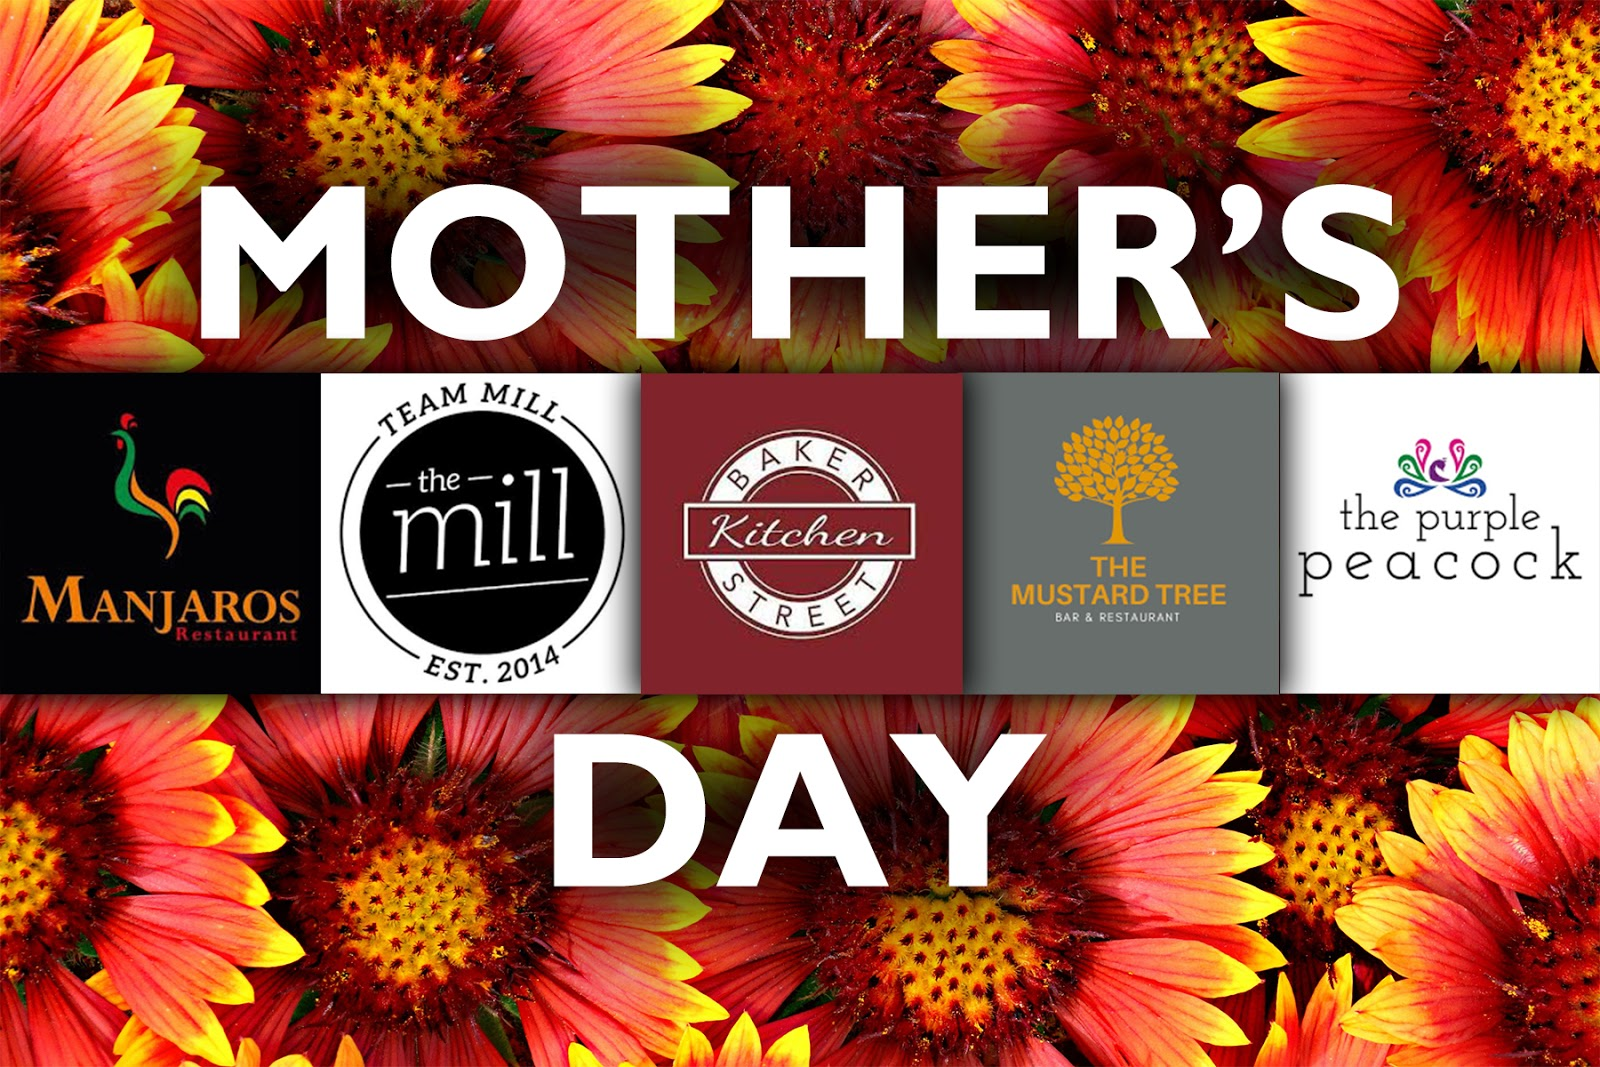 TEESSIDE'S INDEPENDENT RESTAURANTS DELIVERING THIS MOTHER'S DAY